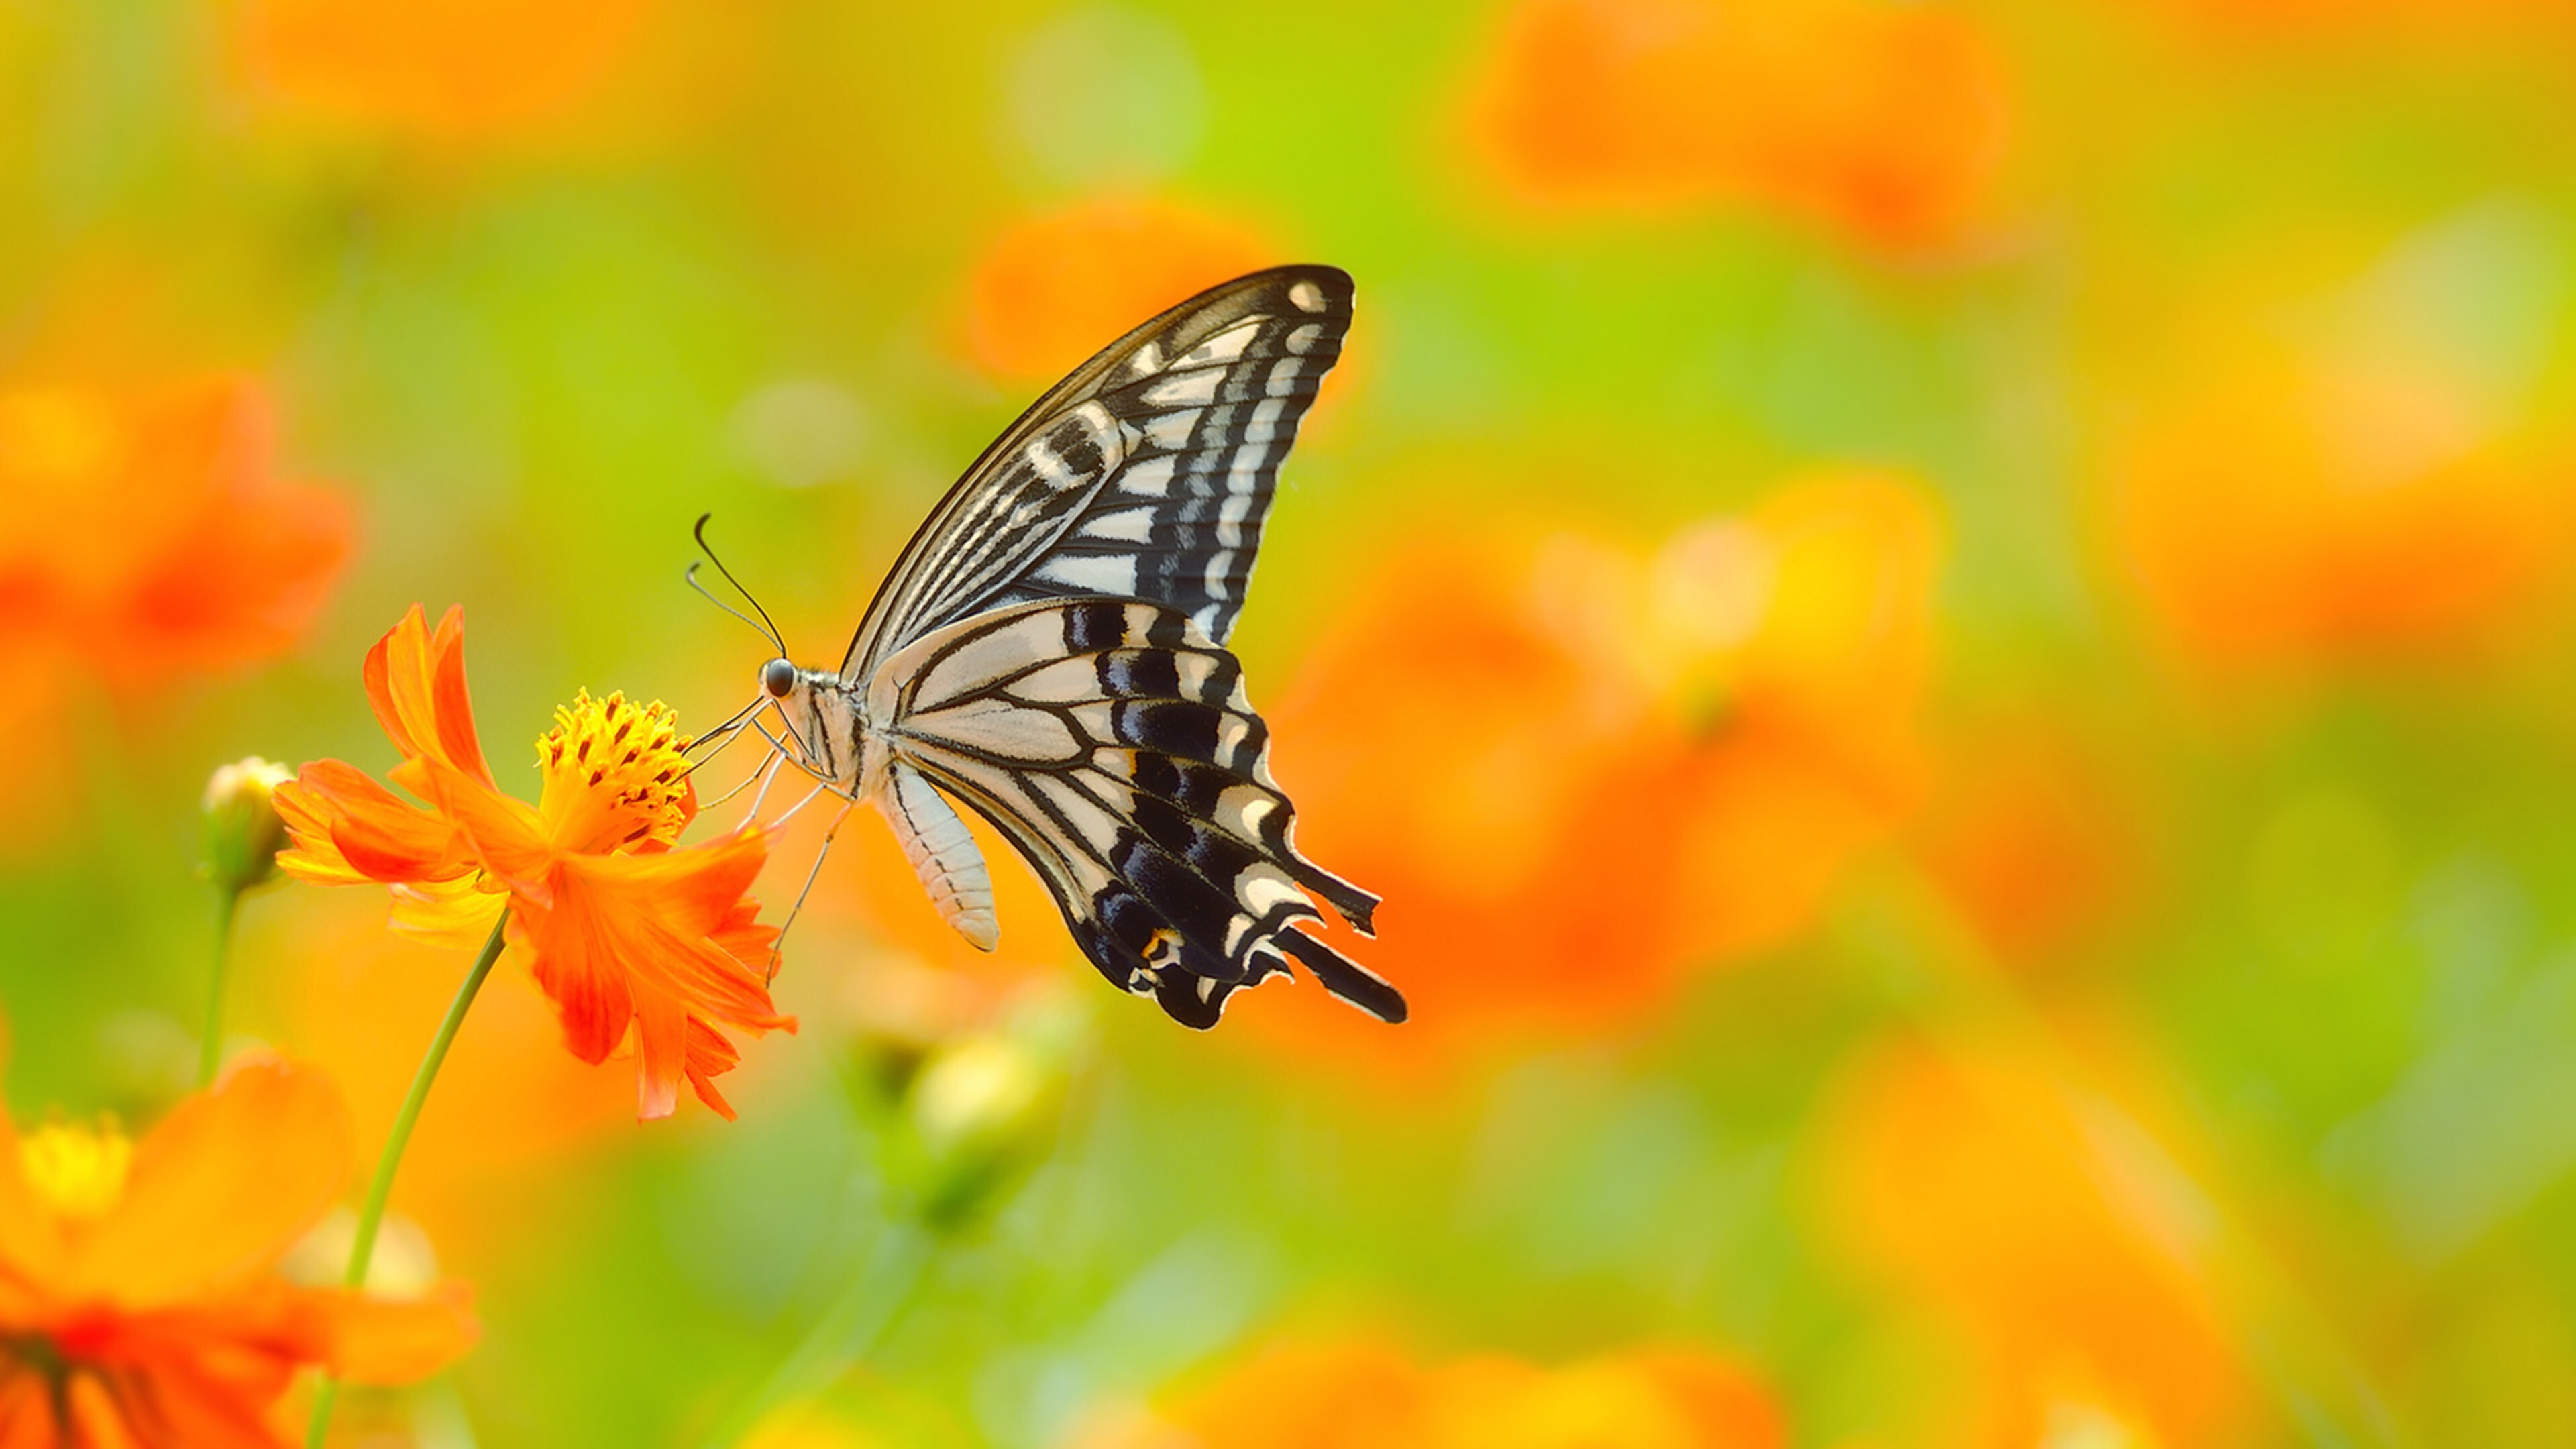 Popular Wallpaper High Resolution Butterfly - Designing_Wings_of_Butterfly_Photo  2018_59516.jpg